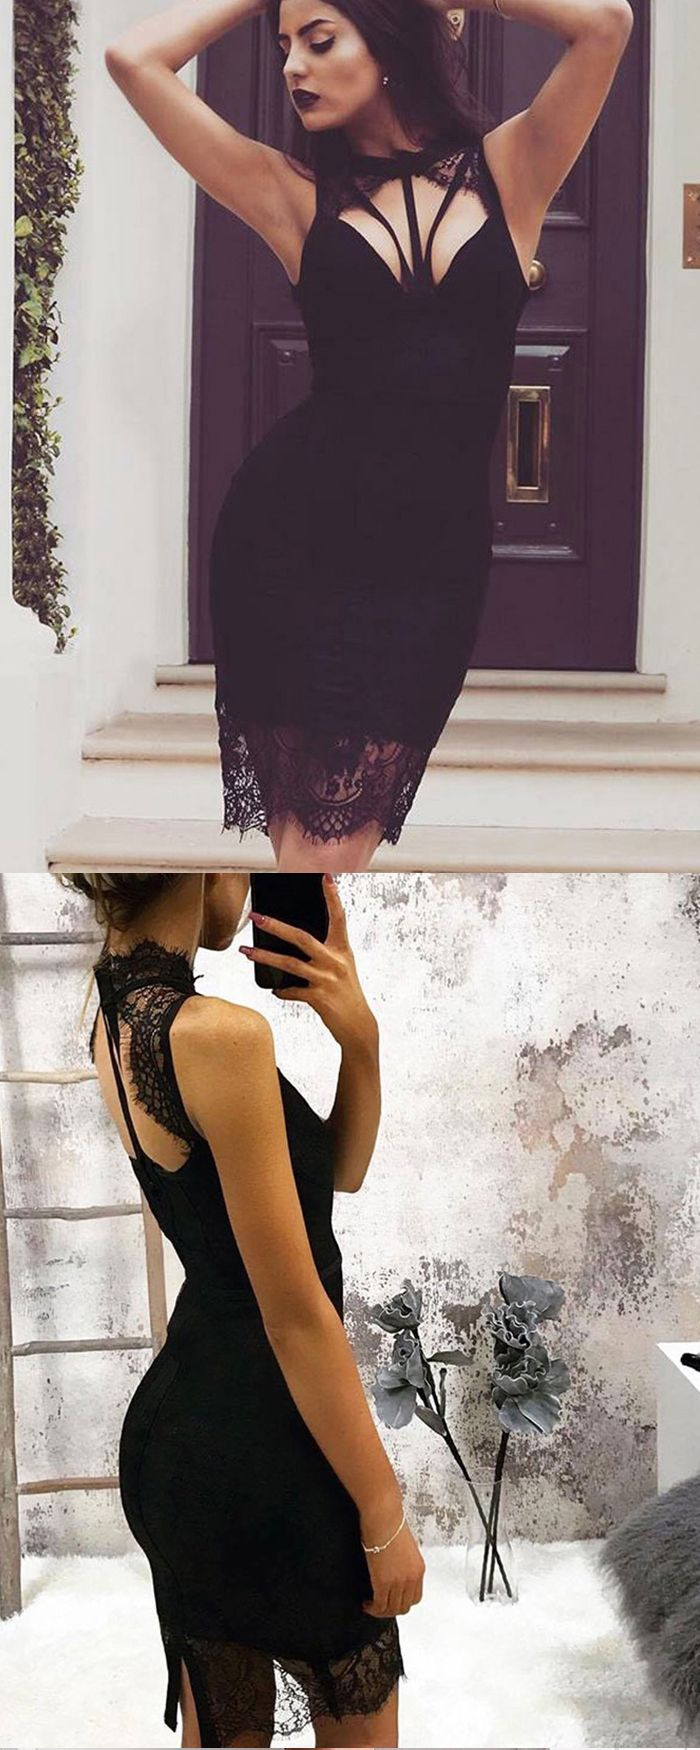 High neck cutout lace black tight party dress hd in